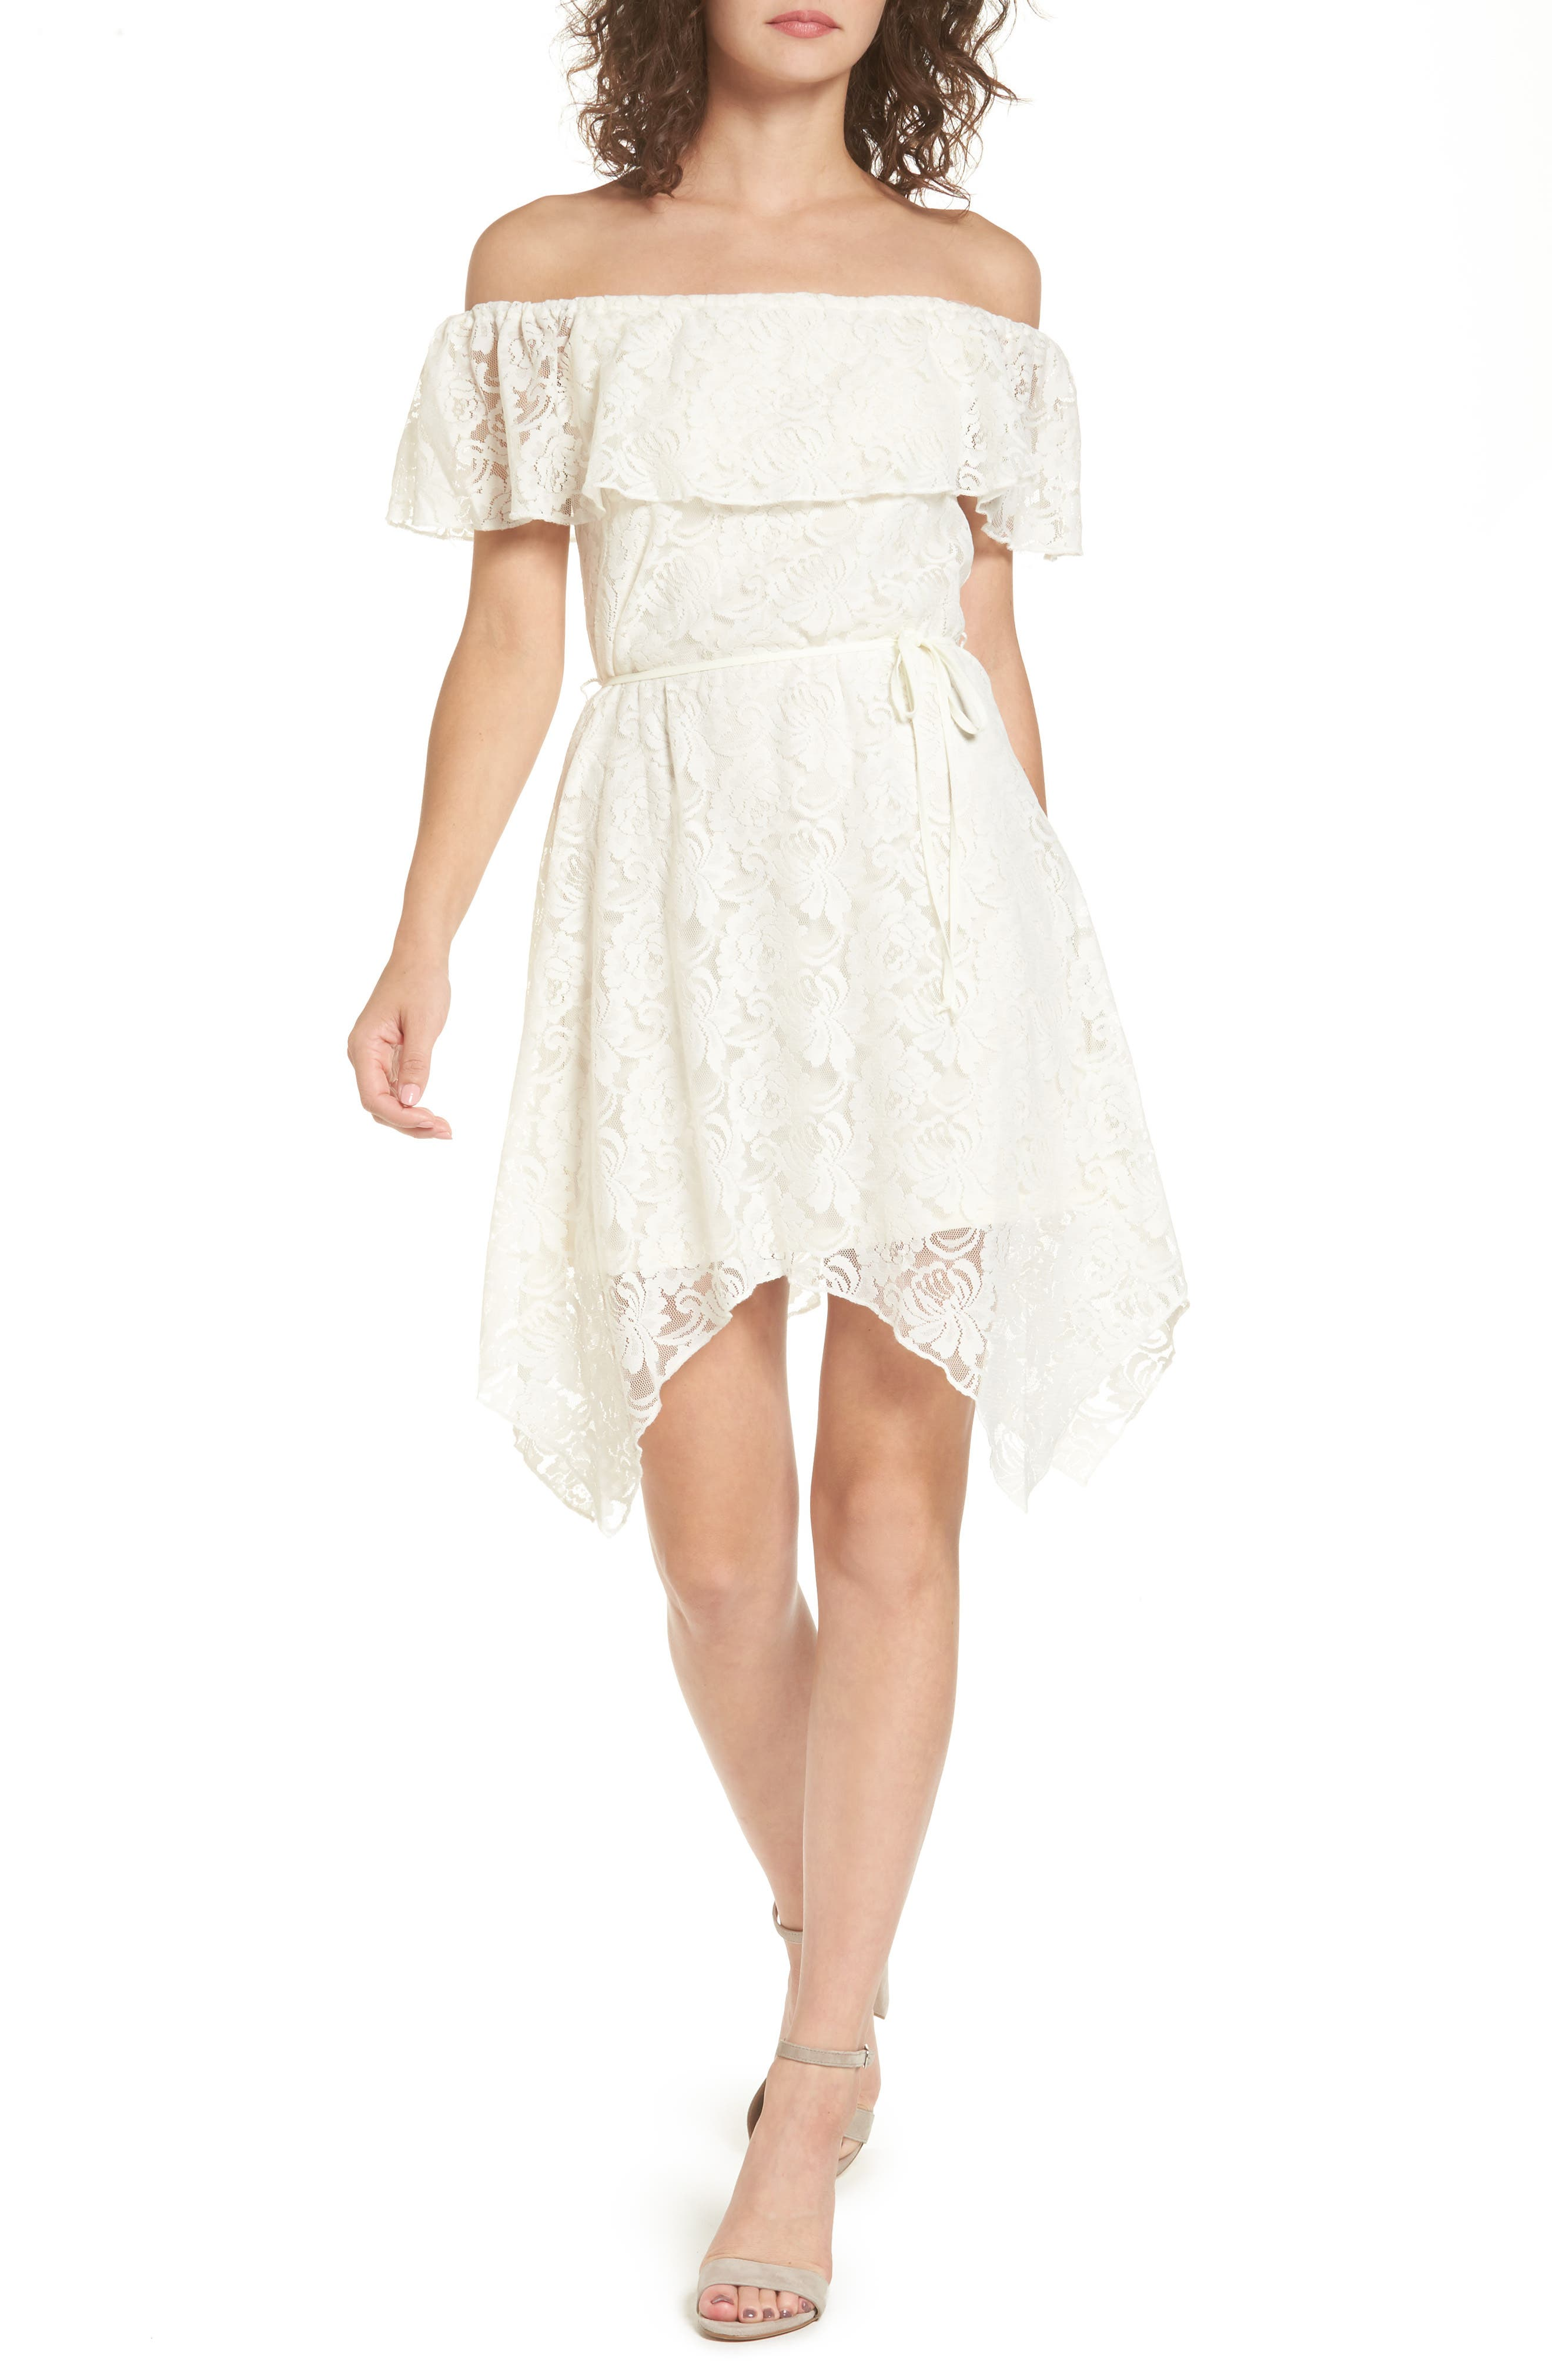 As You WIsh Off the Shoulder Lace Dress